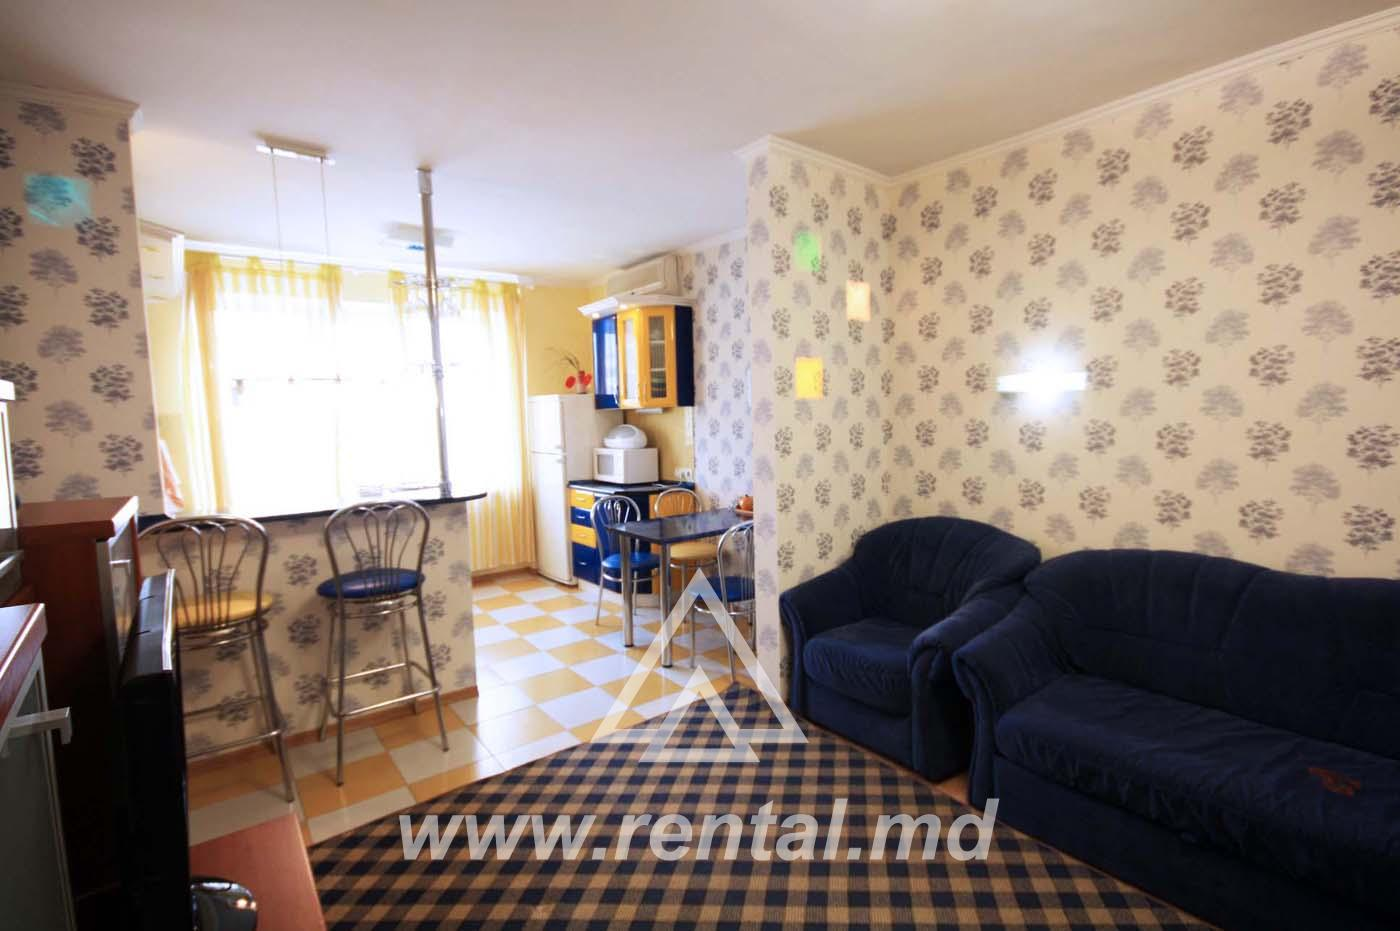 One bedroom apartment for rent in Central Chisinau